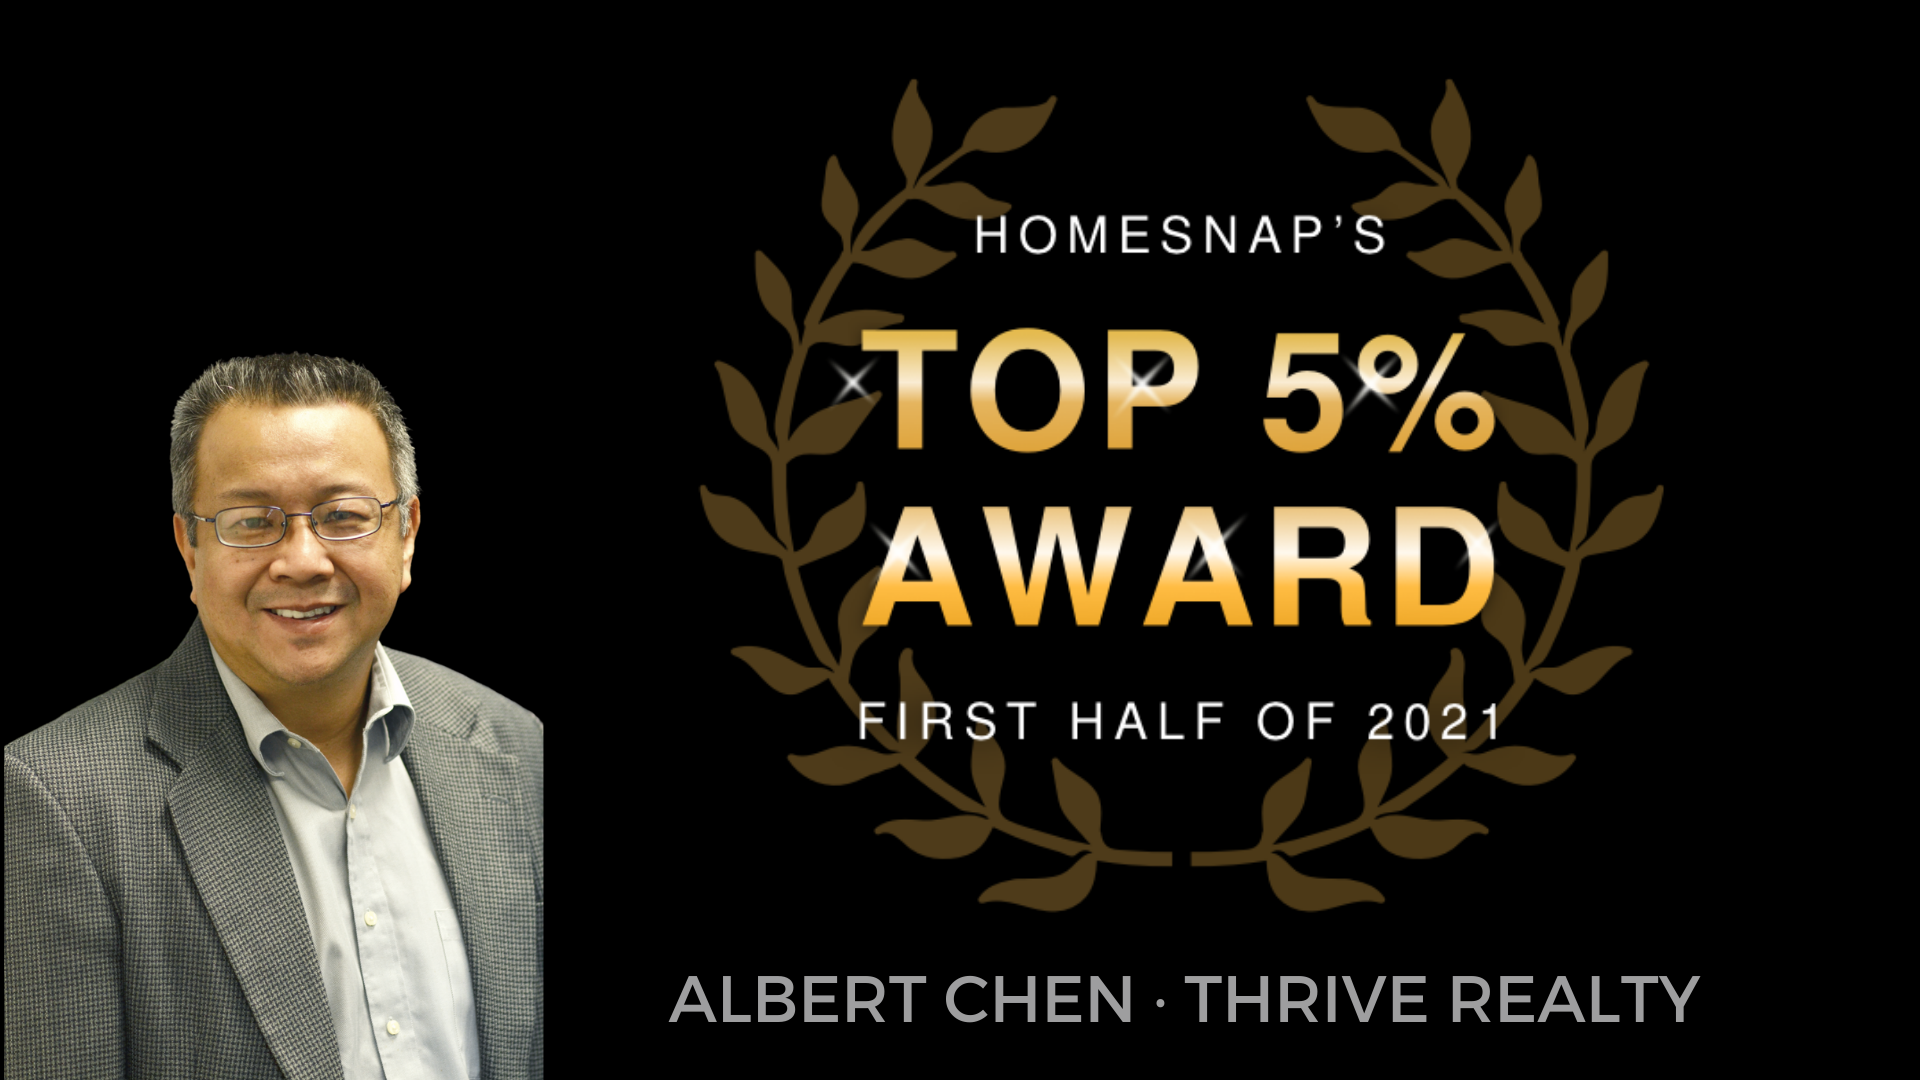 Albert Chen is awarded the Top 5% Homesnap recognition